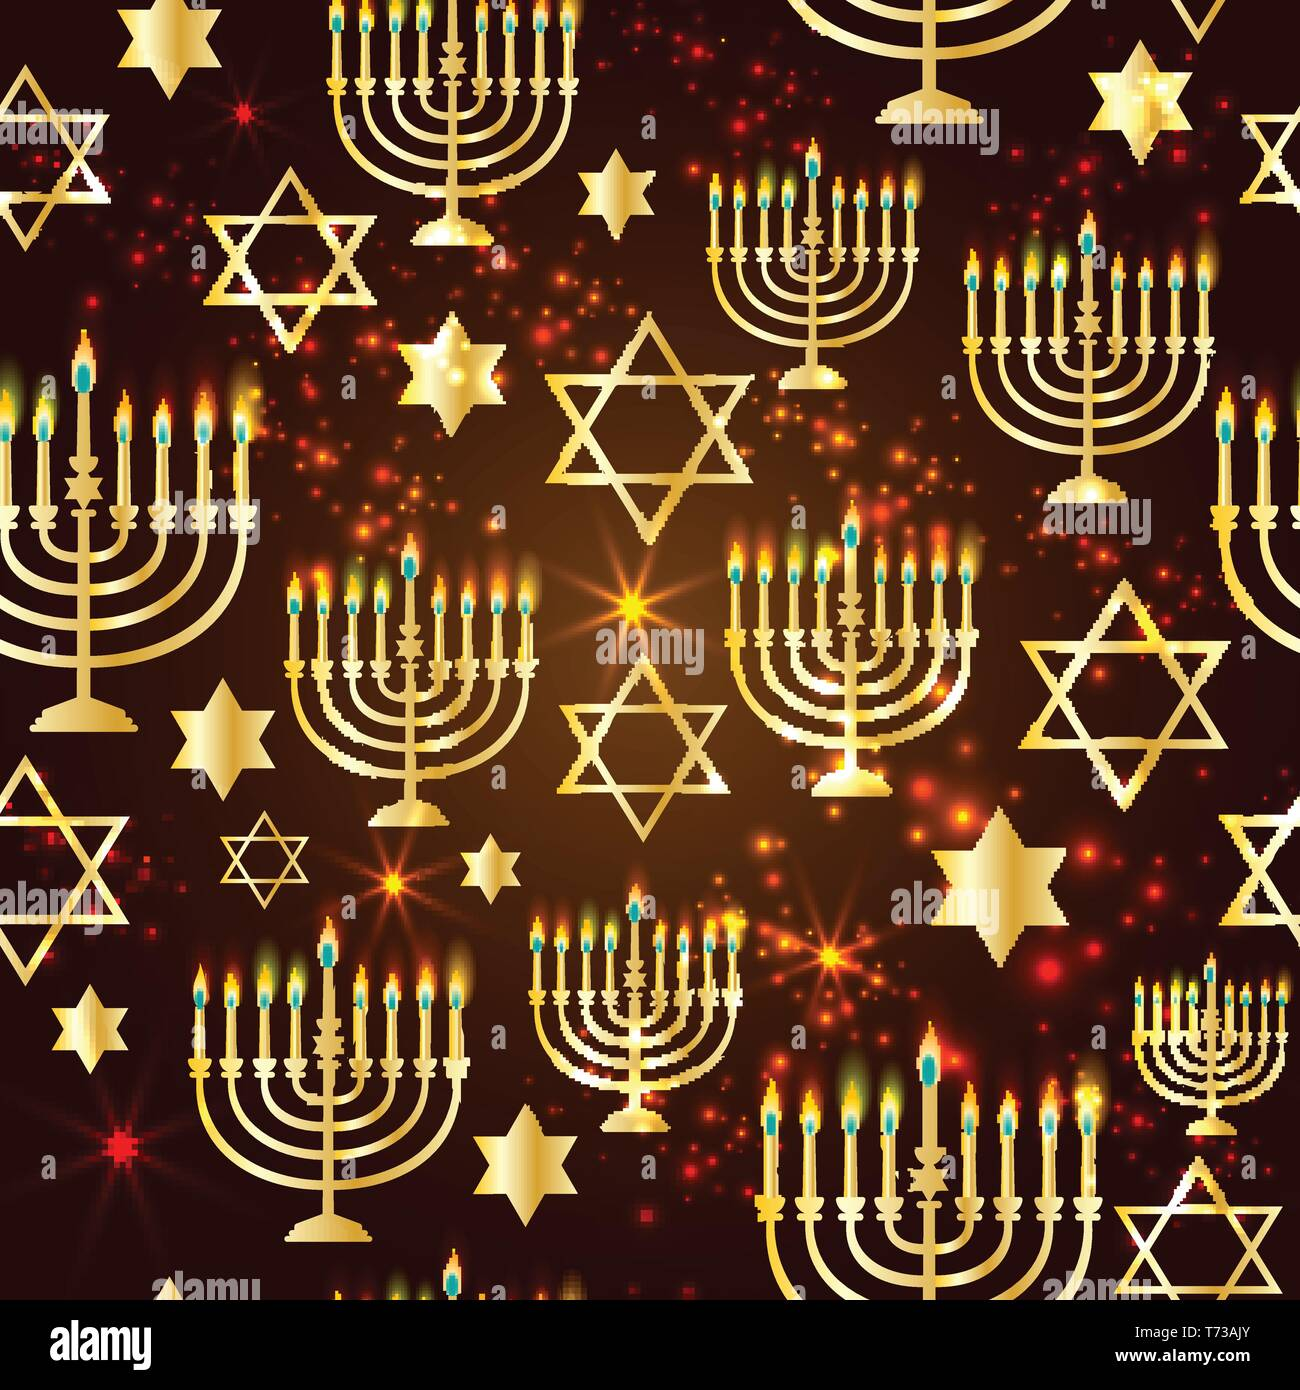 Happy Hanukkah Shining Background with Menorah, David Star and Bokeh Effect. Seamless pattern. - Stock Vector